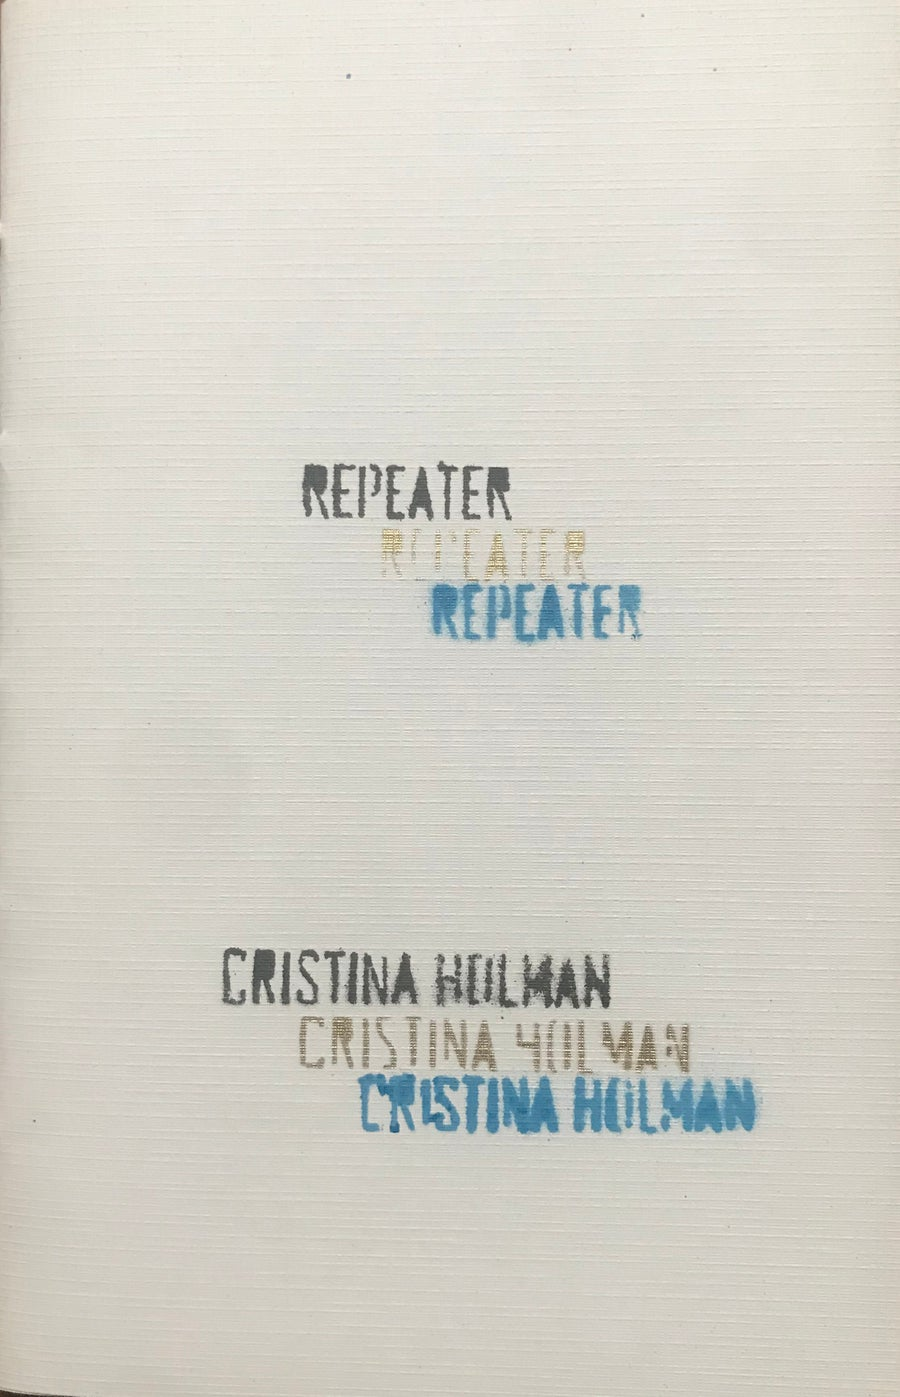 """Image of """"Repeater"""" by Cristina Holman"""